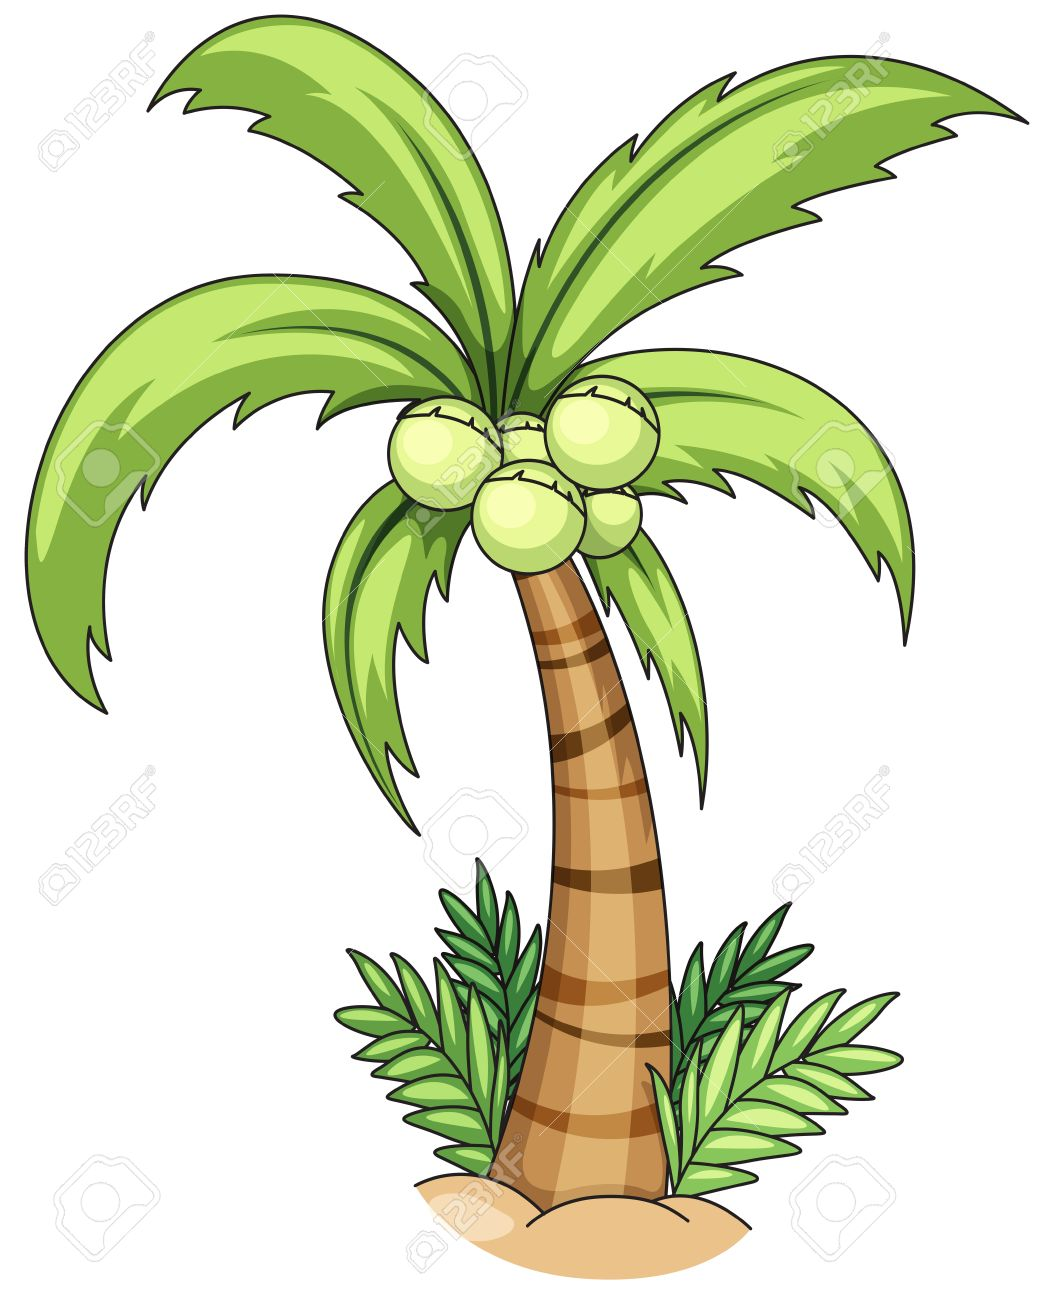 closeup single coconut tree with coconuts royalty free cliparts rh 123rf com coconut tree clipart images coconut tree clipart black and white